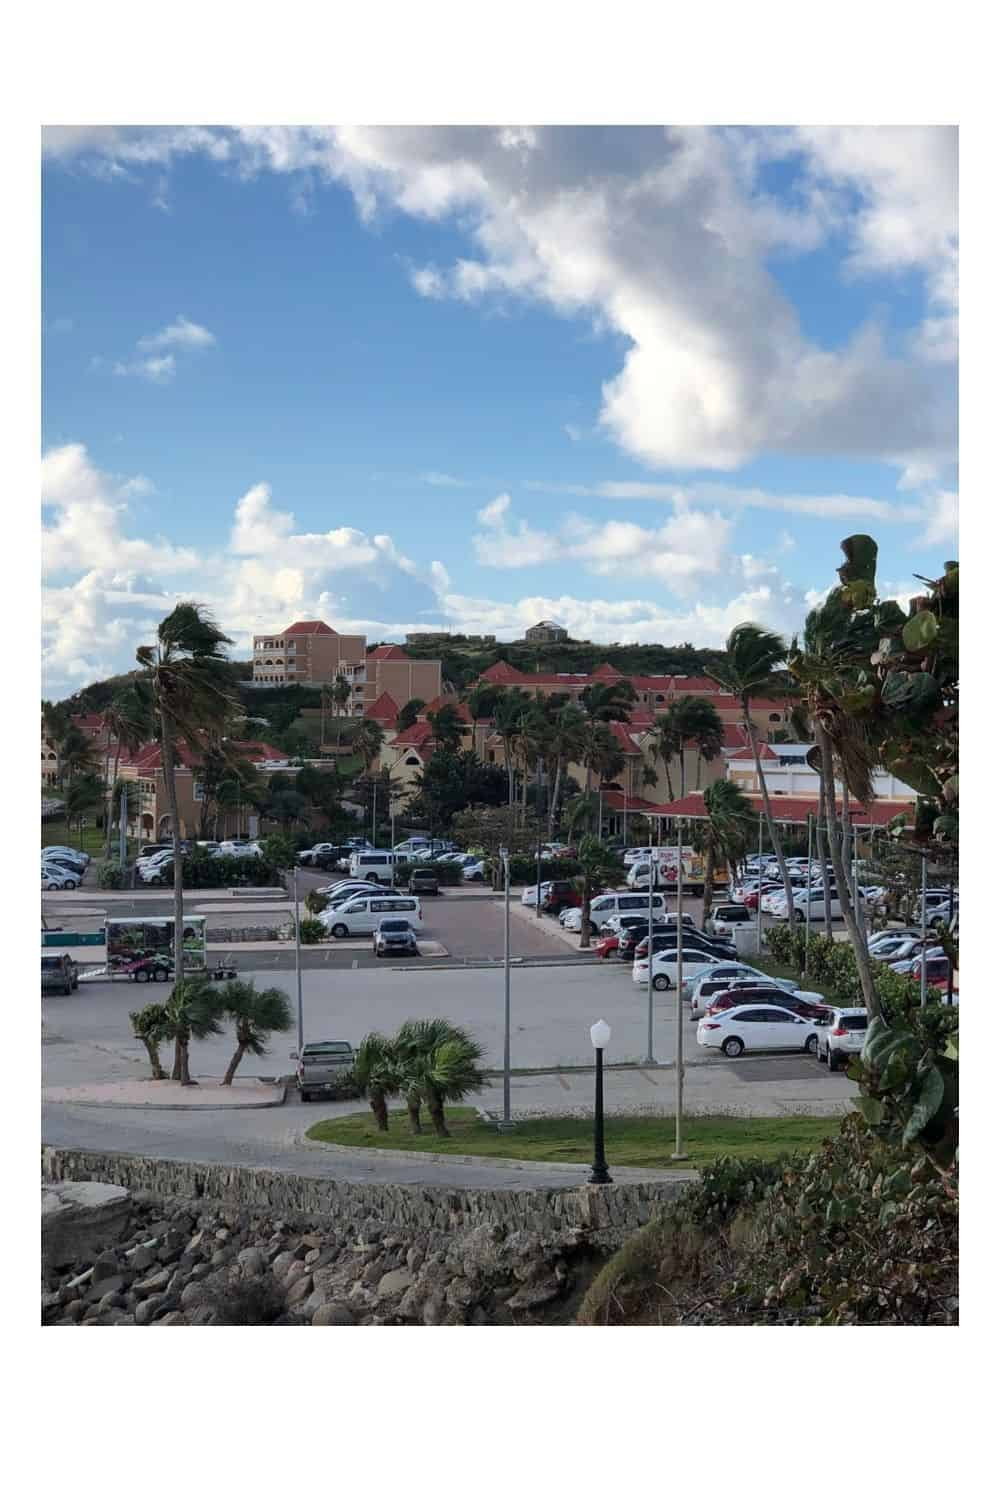 rent a car to see more of SXM